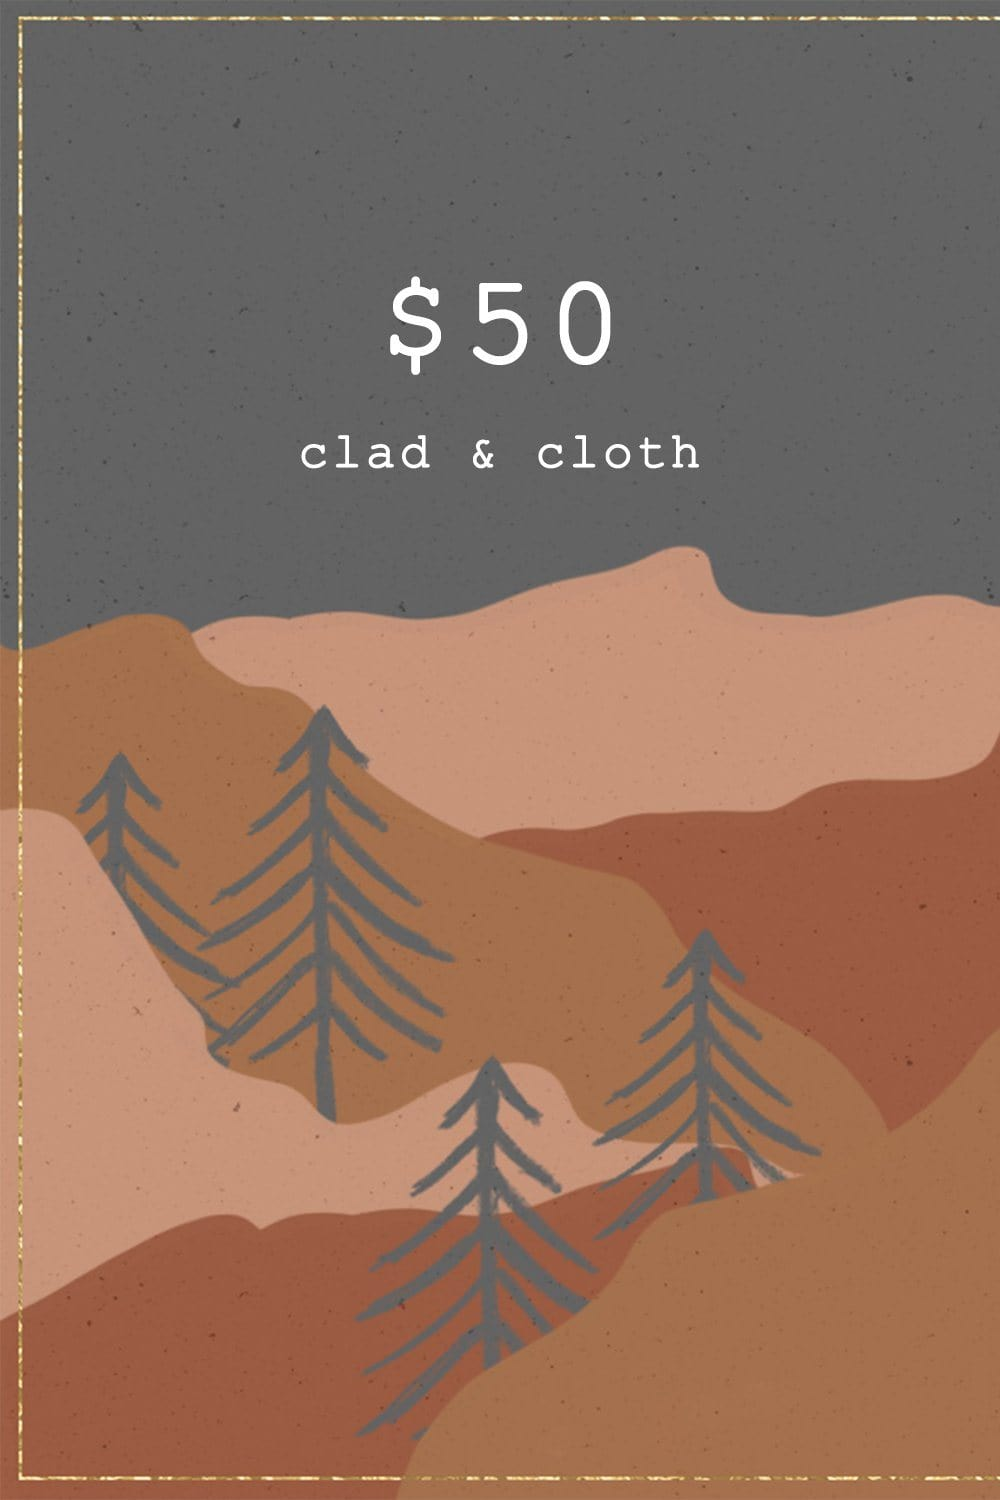 CLAD & CLOTH Gift Card - $50 Gift Card n/a Clad and Cloth